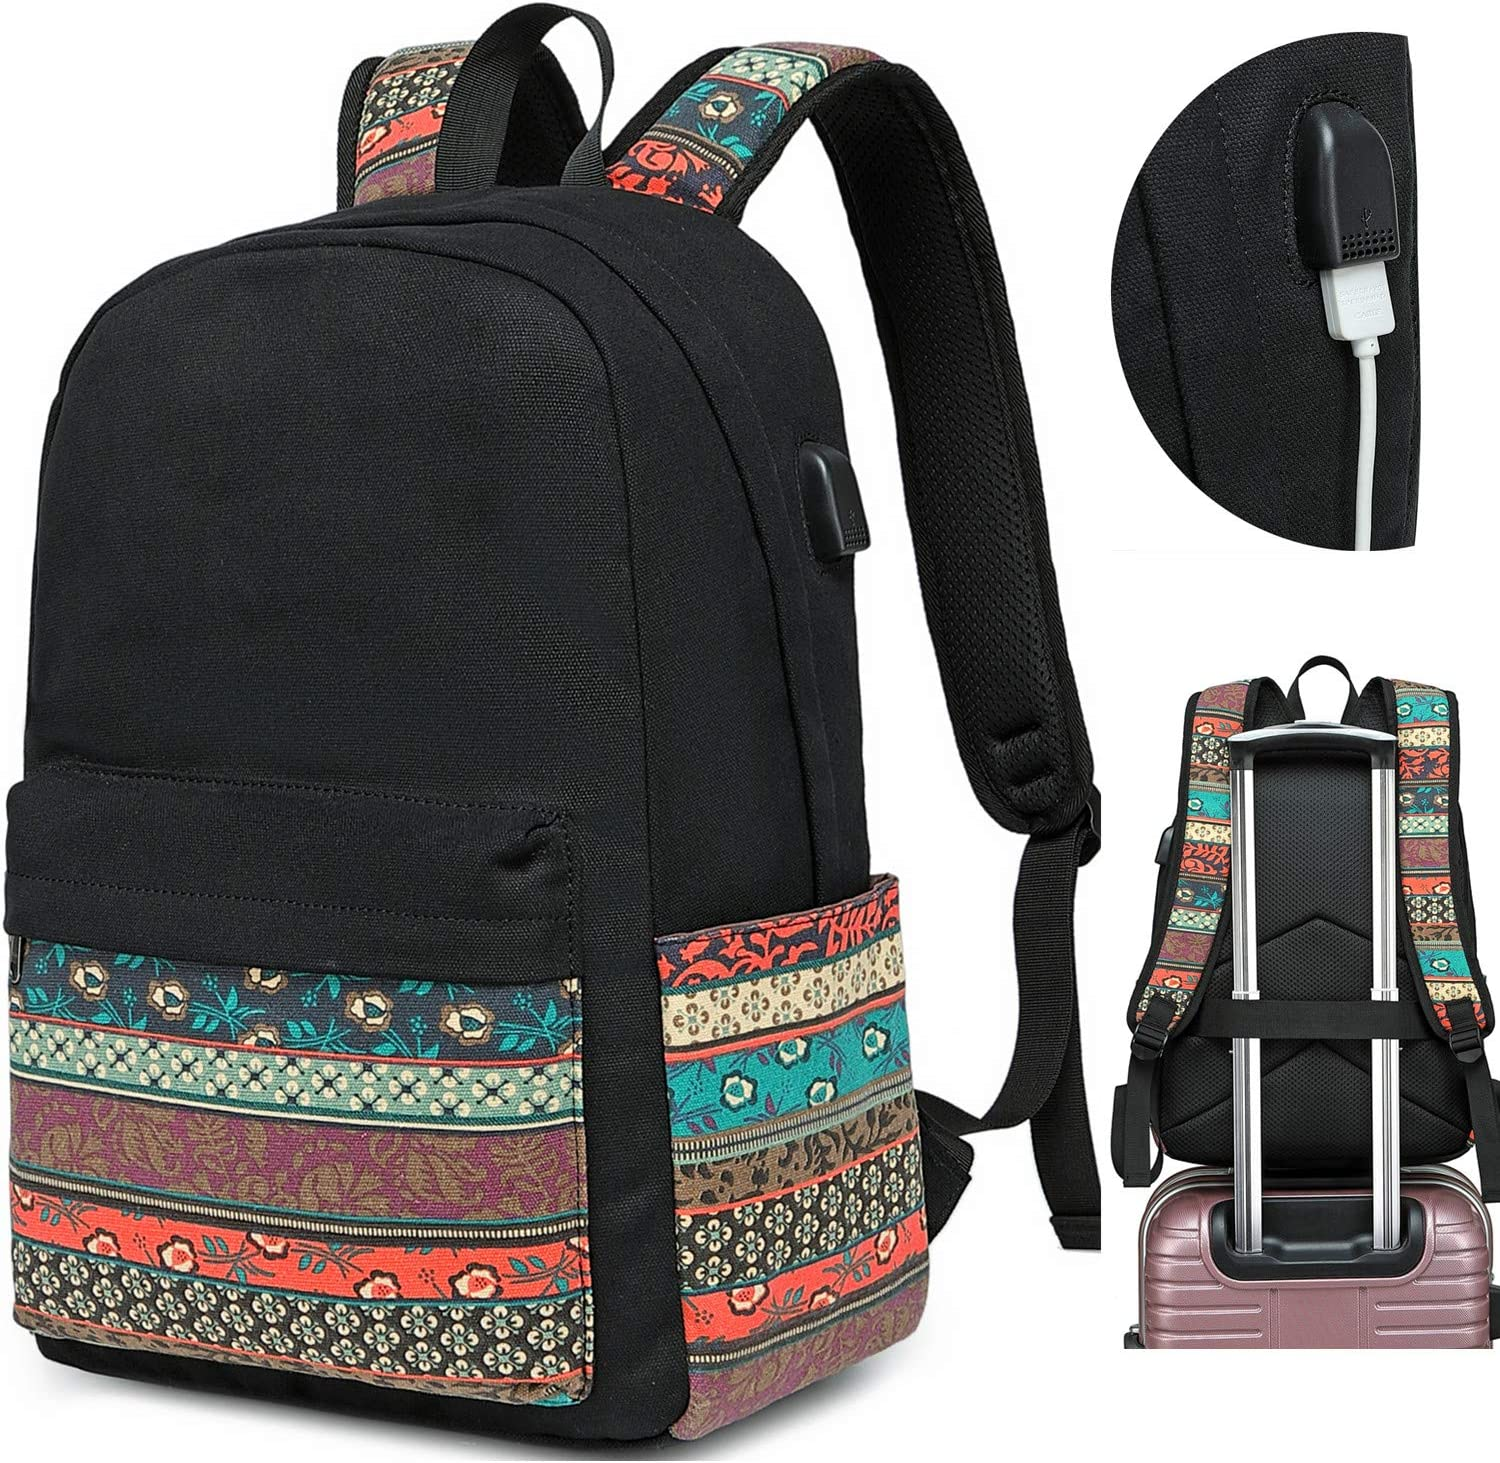 Canvas Travel Laptop Backpacks Womens College Backpack School Bag 15 Inch Usb Daypack Outdoor With Trolley Case Slot Price In Uae Amazon Uae Kanbkam